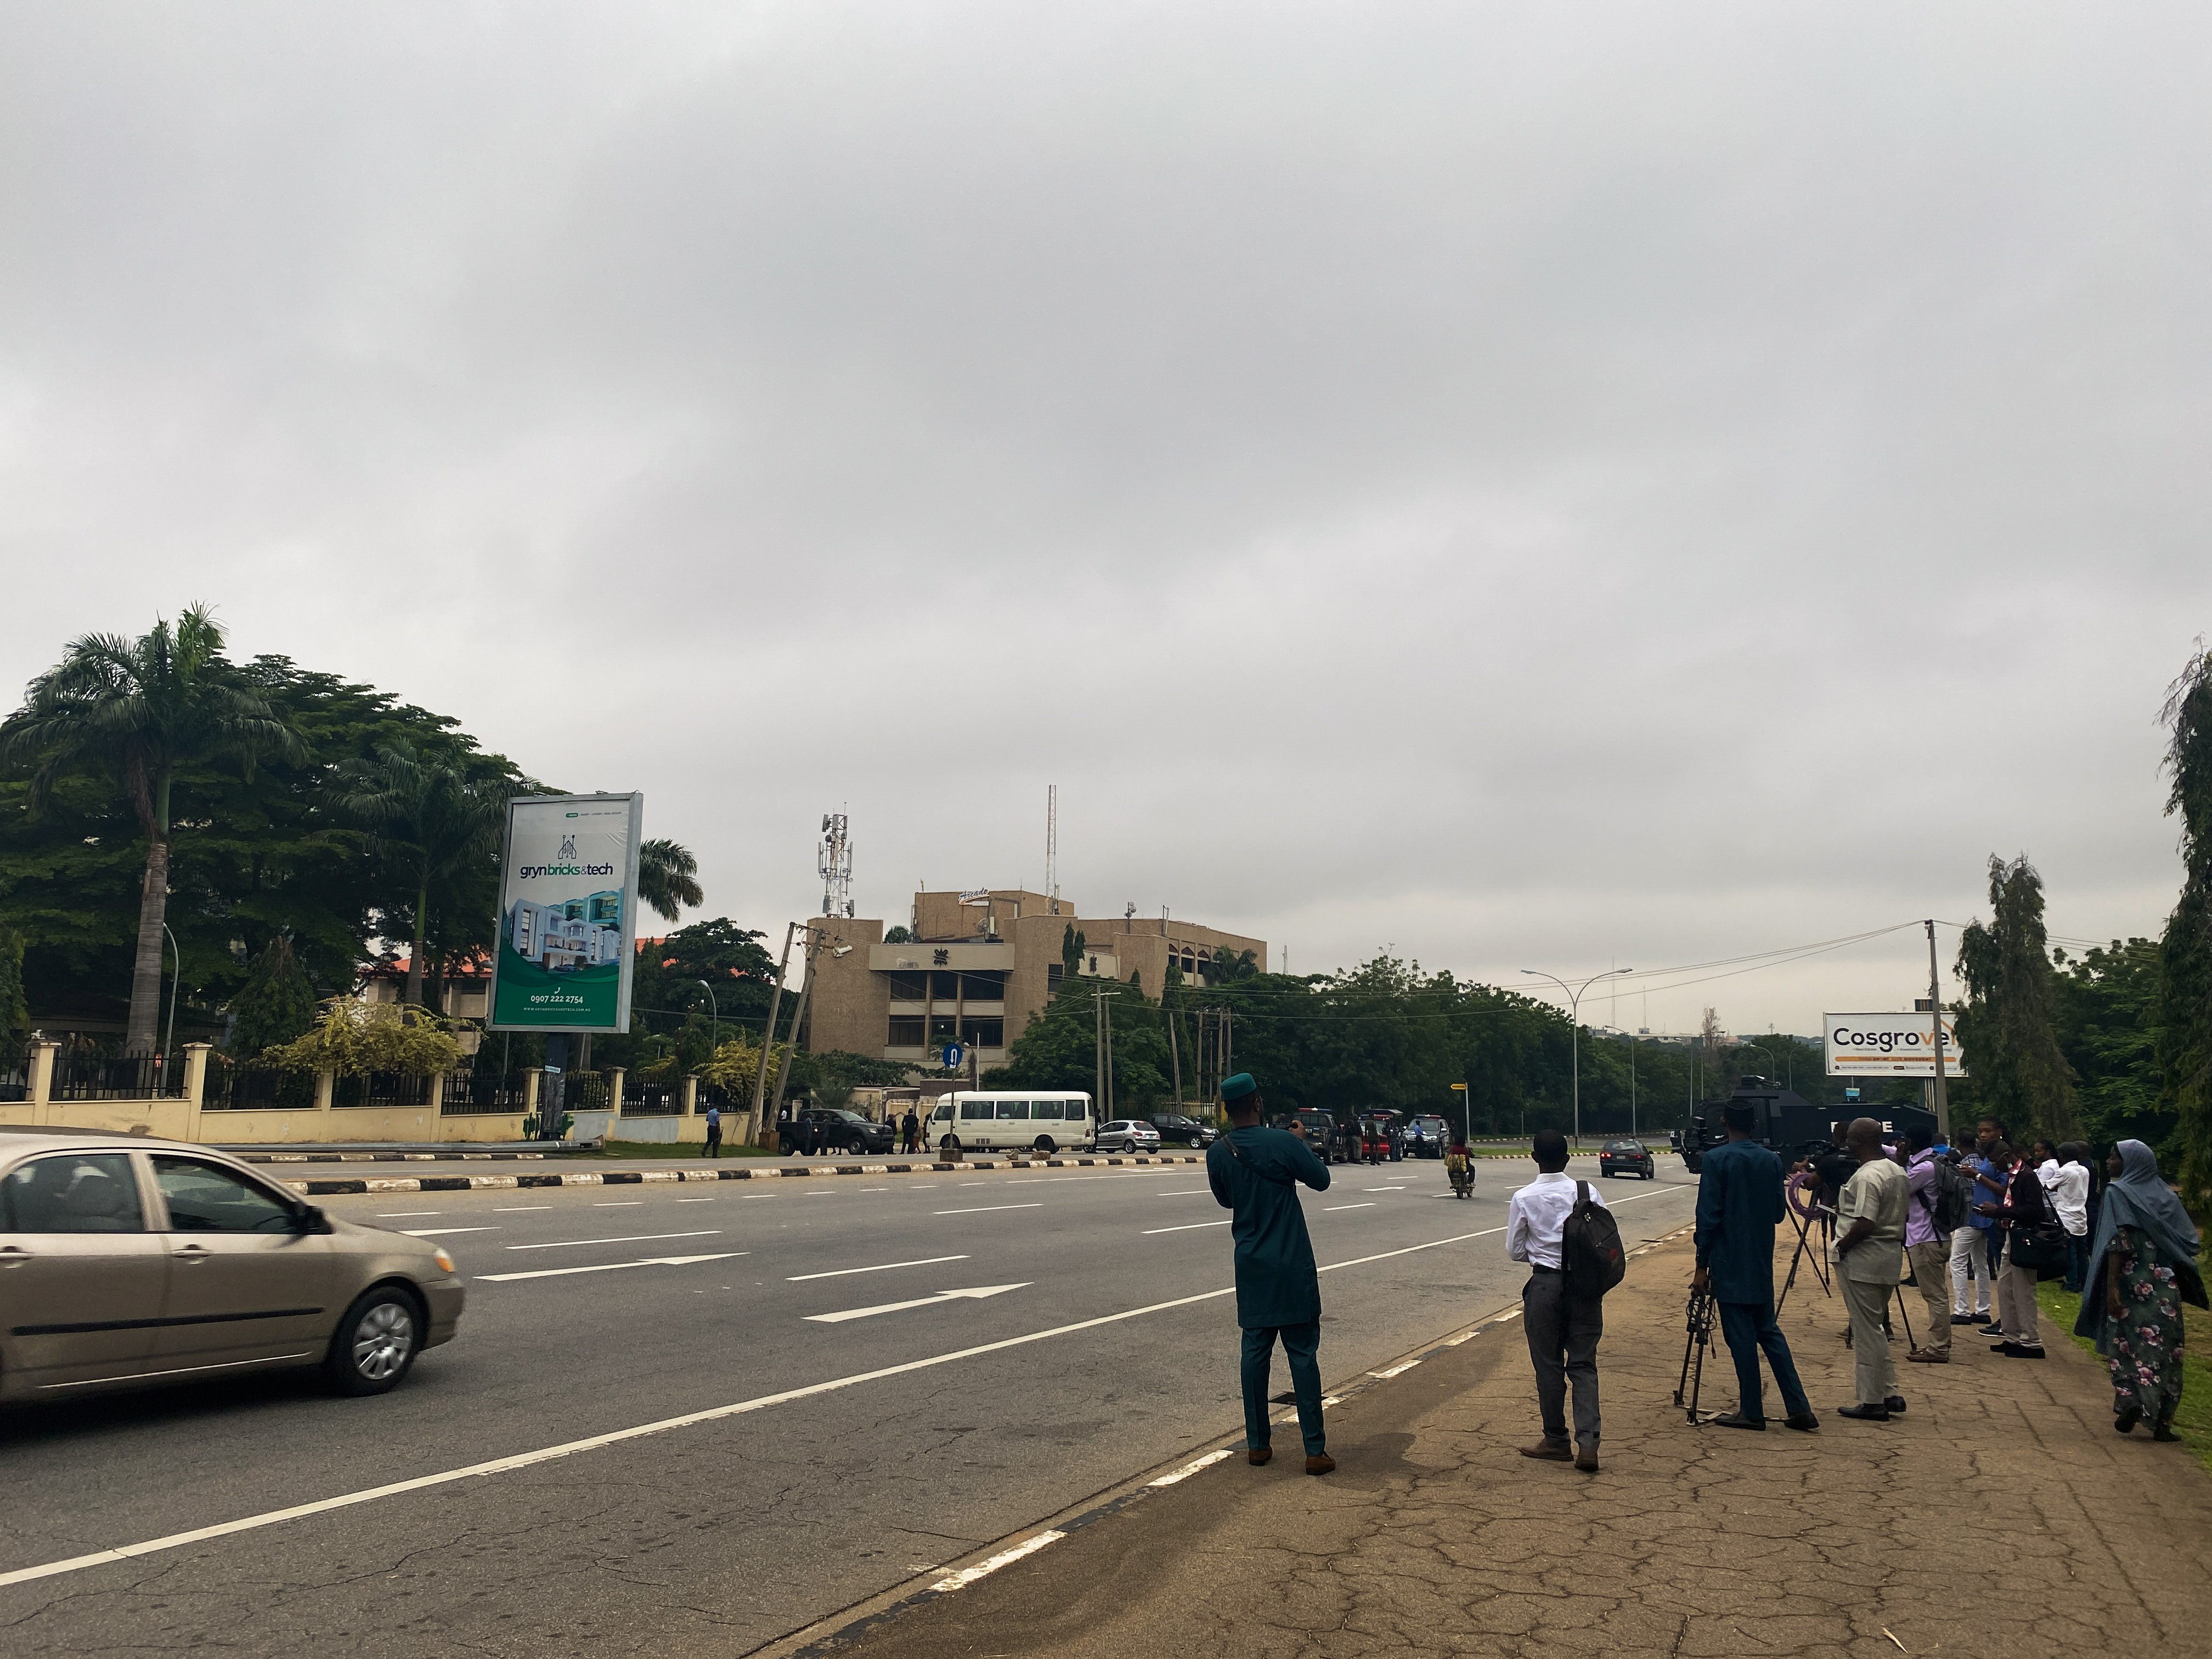 Journalists are seen stationed outside the Federal High Court as they await the arrival of IPOB leader Nnamdi Kanu at the court in Abuja, Nigeria. July 26, 2021. REUTERS/Abraham Achirga